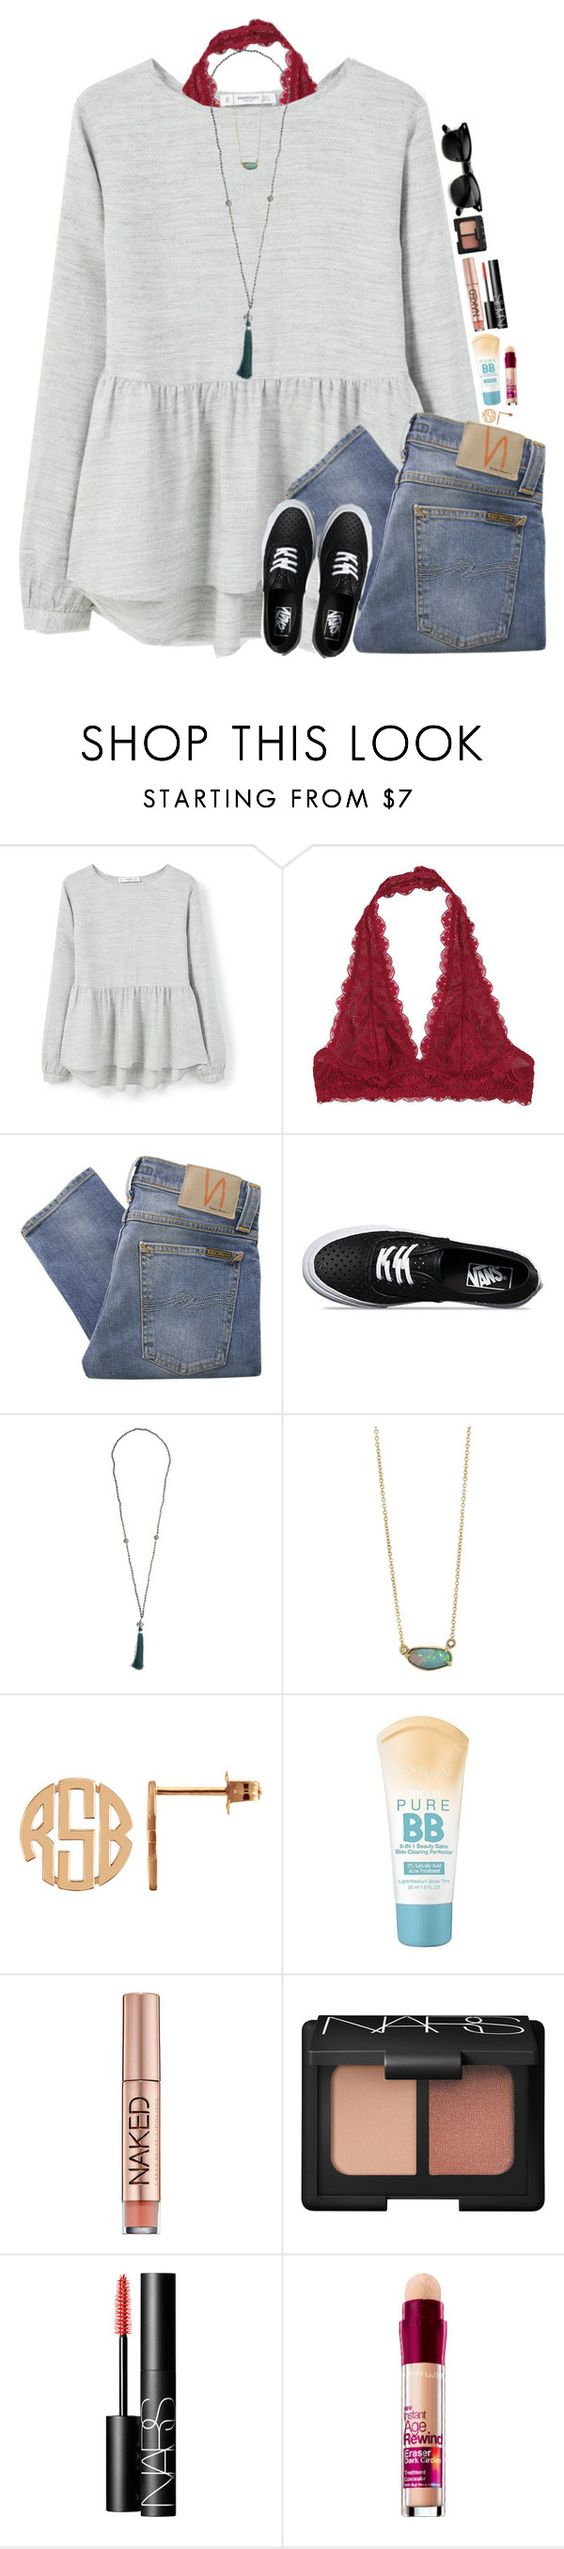 """""""Life's Too Short To Blind People With Rock Salt"""" by teamboby ❤ liked on Polyvore featuring MANGO, Free People, Nudie Jeans Co., Vans, Urban Decay, NARS Cosmetics, Maybelline and ZeroUV"""